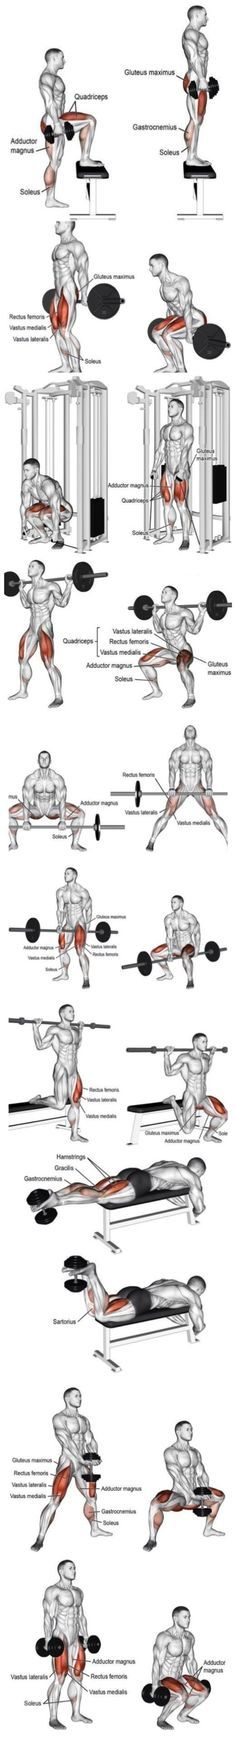 Turn Your Legs Into Tree Trunks. Push your body to its limits, training until you can't keep proper form anymore. 4. Use the full range-of-motion. Make sure that you're working the full range-of-motion of your legs. Again, it'll help you work through multiple muscle groupings, which is the most optimal way to train. Here's a basic workout with the focus being on ...